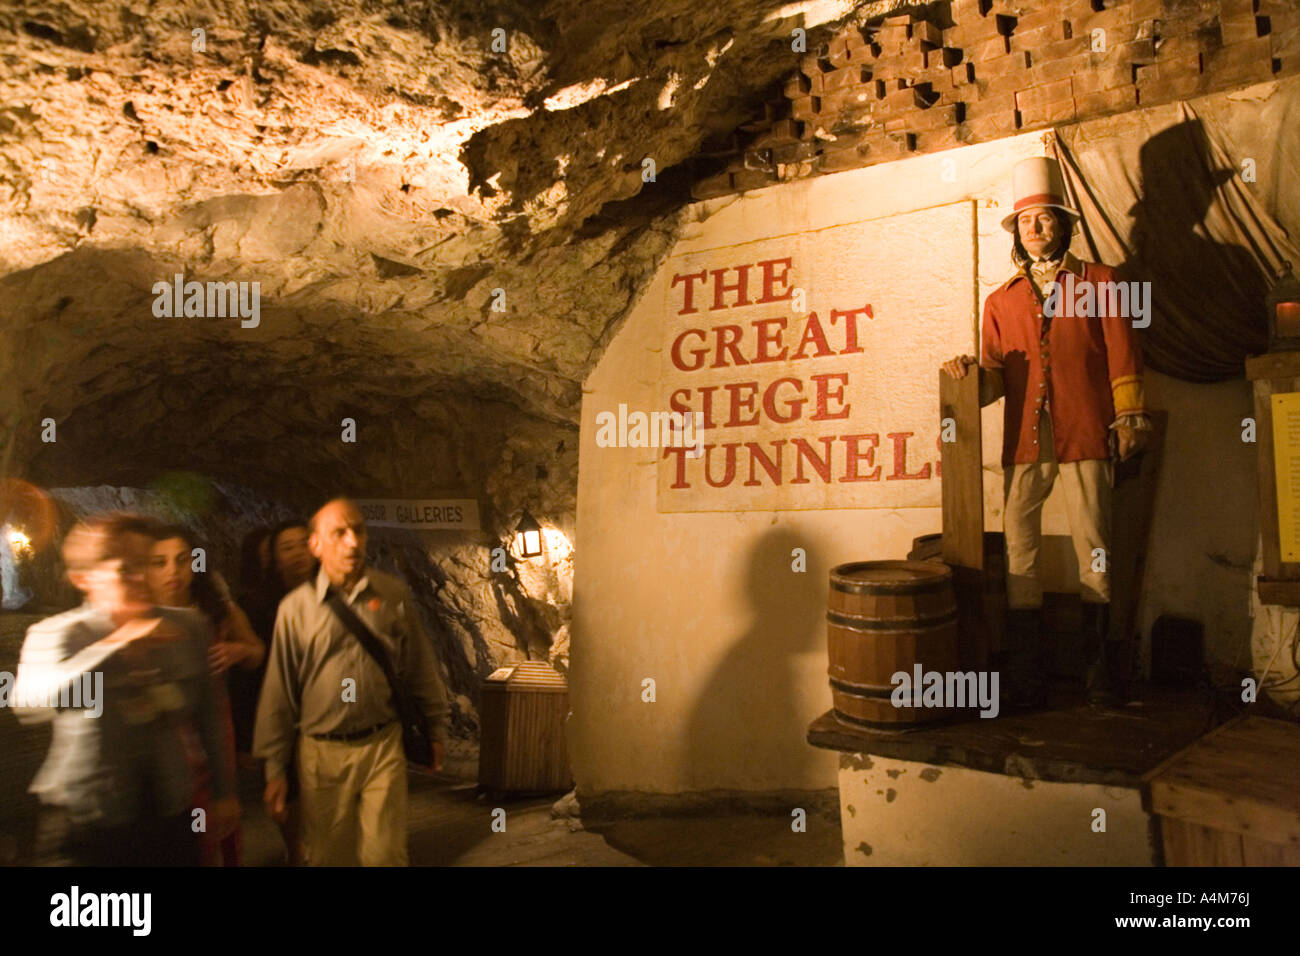 Gibraltar The Great Siege Tunnel Waxwork display - Stock Image